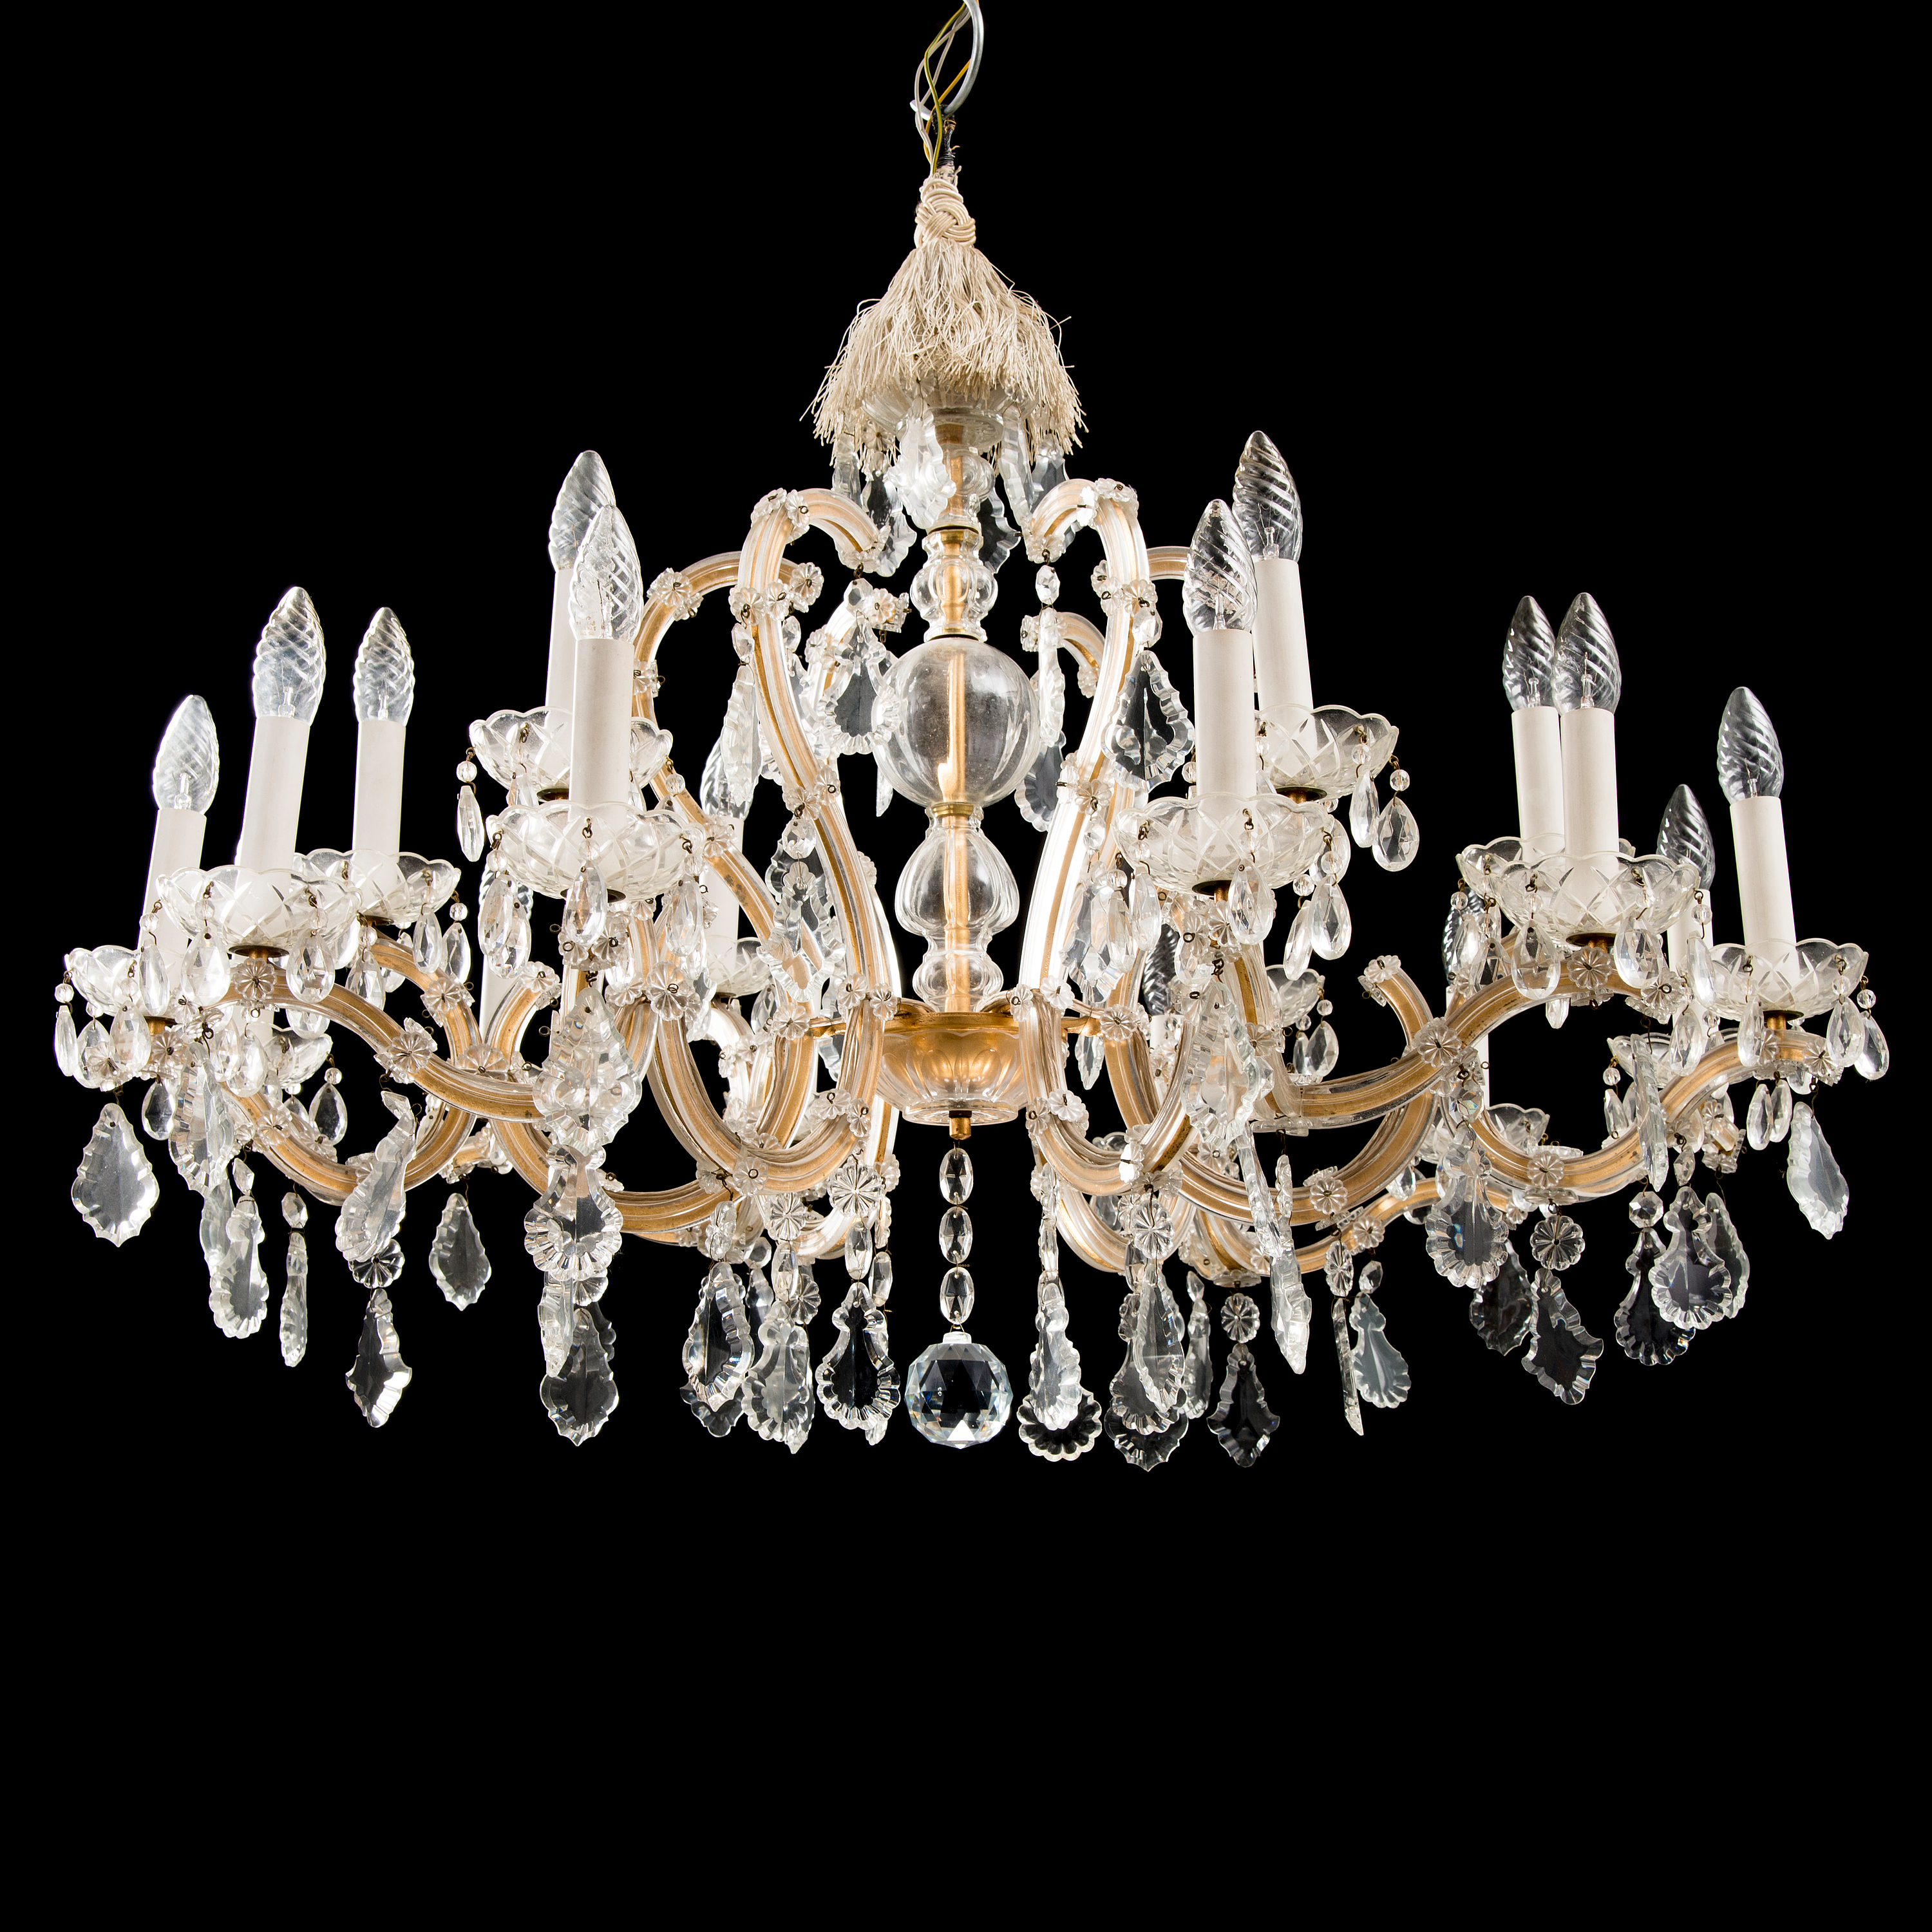 A maria theresa style chandelier from the latter half of the 20th 10850525 bukobject arubaitofo Choice Image